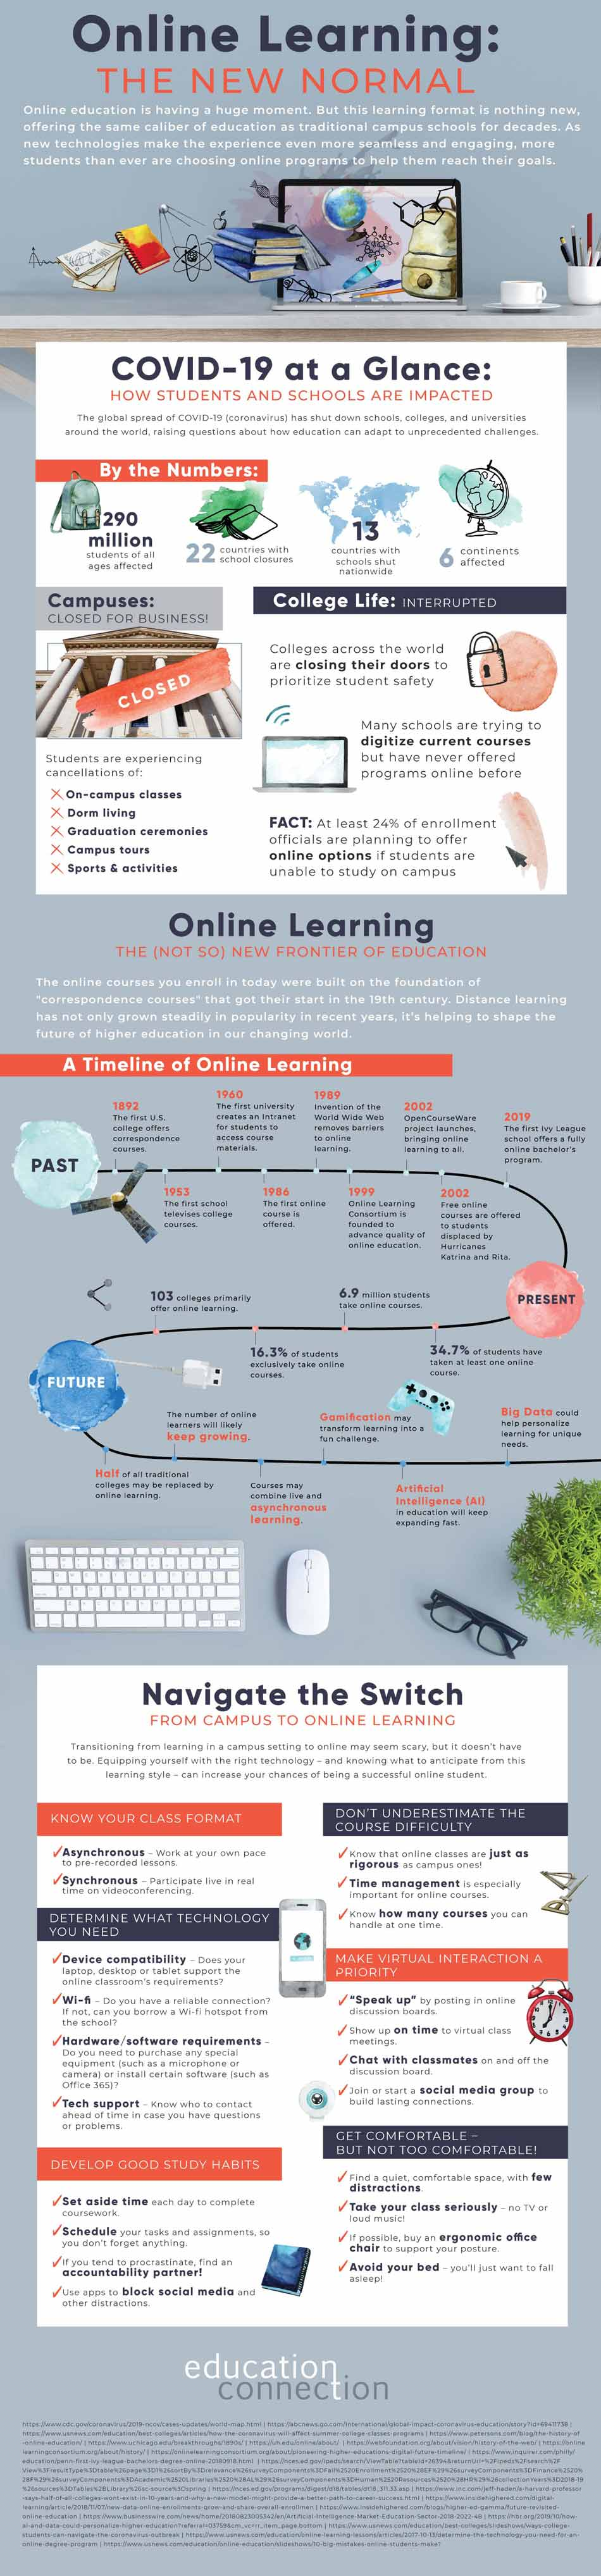 covid19 online learning infographic